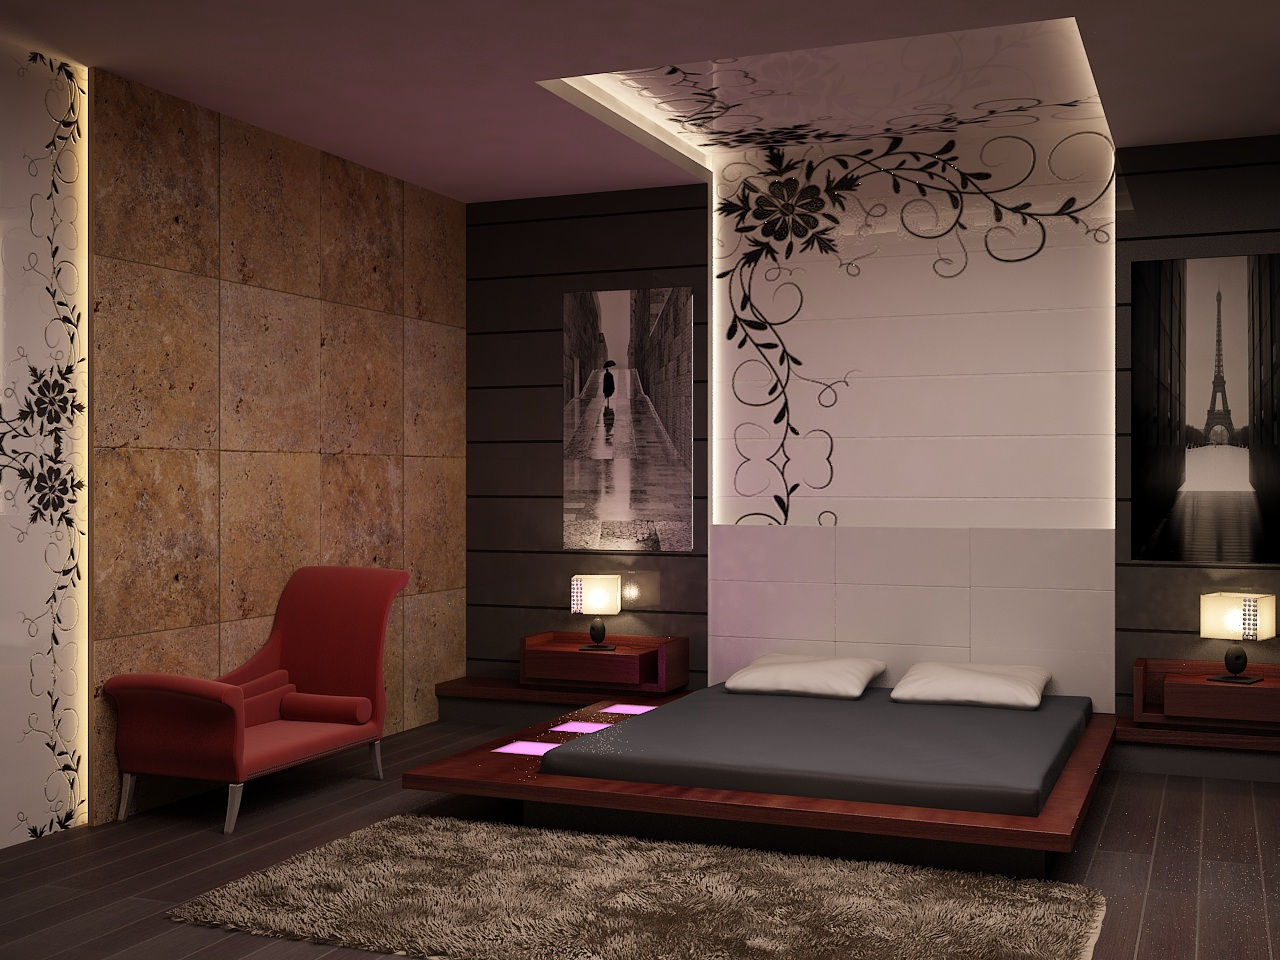 Japan Bedroom Decor Serkan Yazici 3d 39ream 39 Design Wix